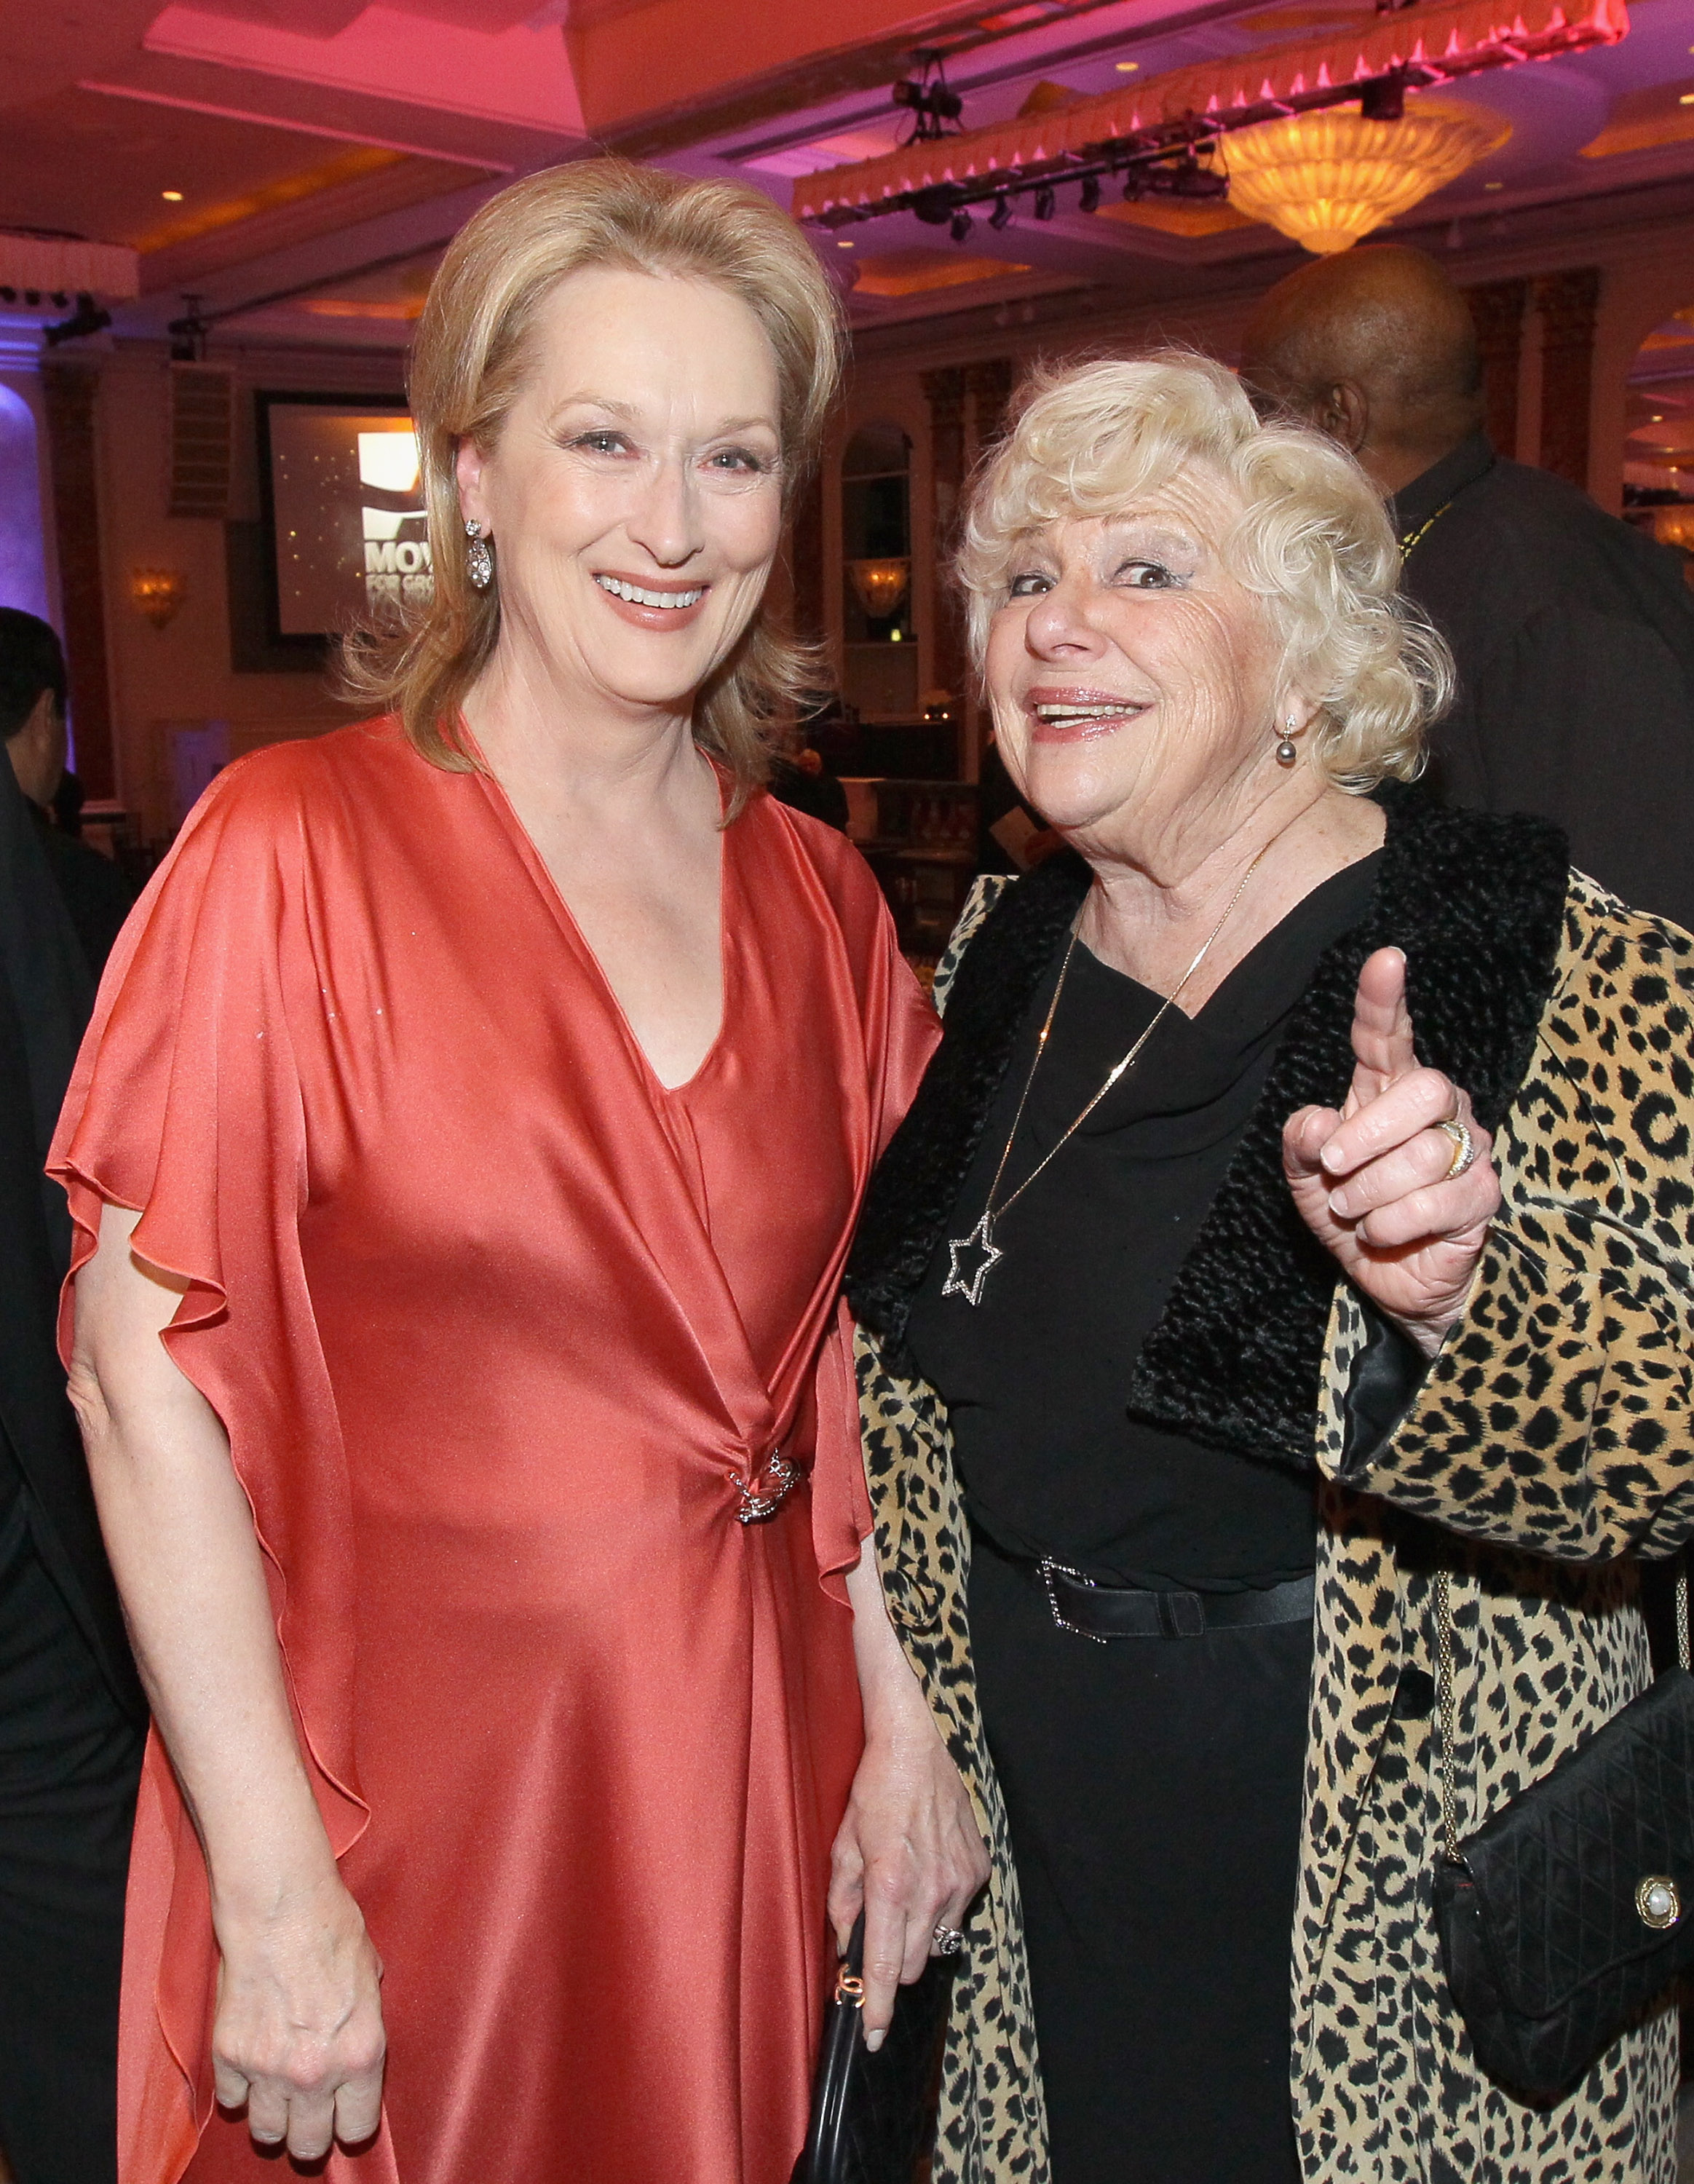 Meryl Streep and Renee Taylor. Image Credit: Getty Images